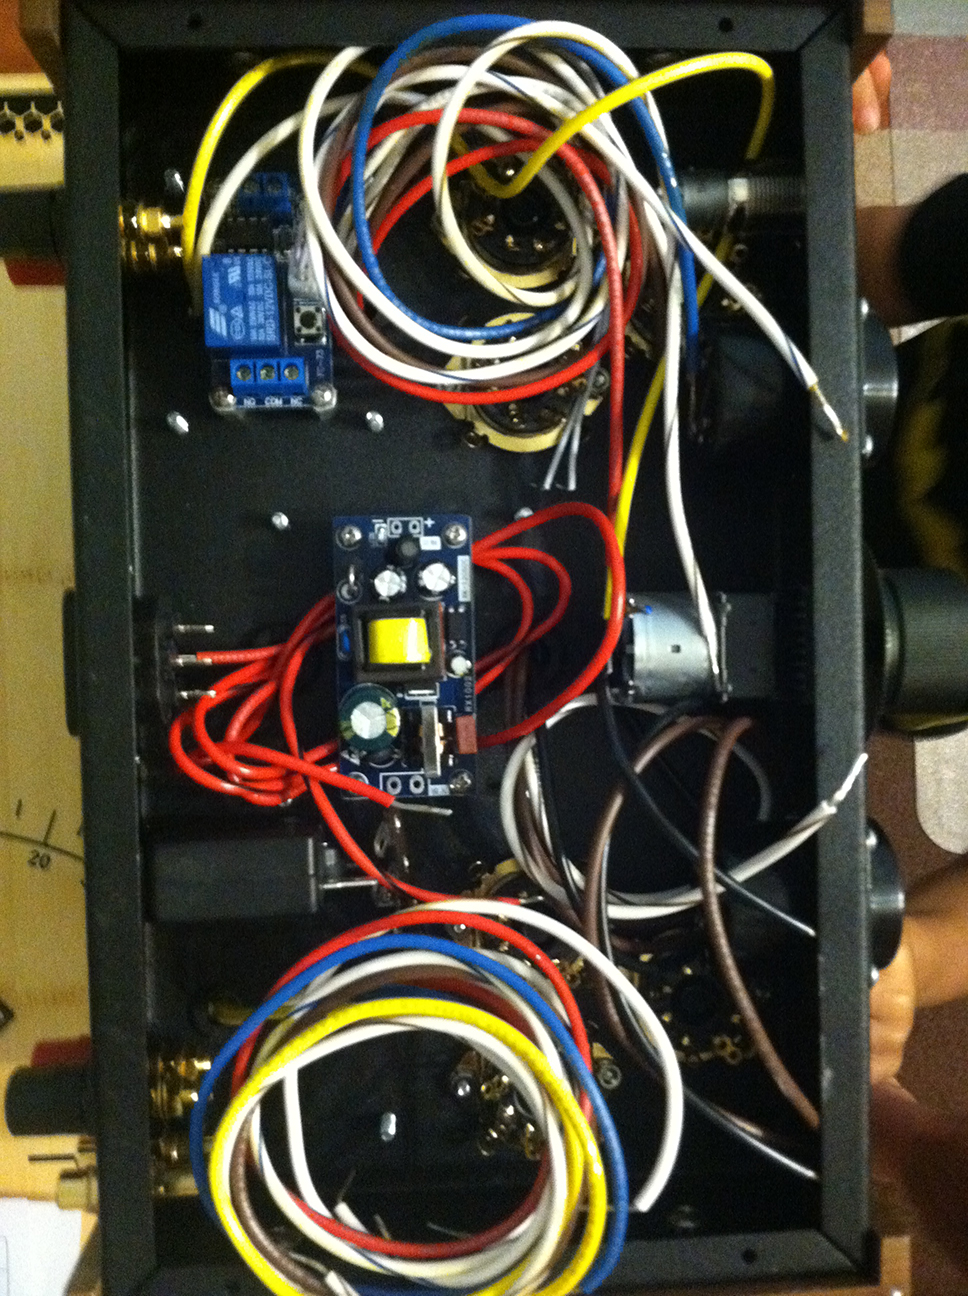 hight resolution of 10w executive tube amplifier parts express project gallery craig j coley dmc 12 color wiring diagram